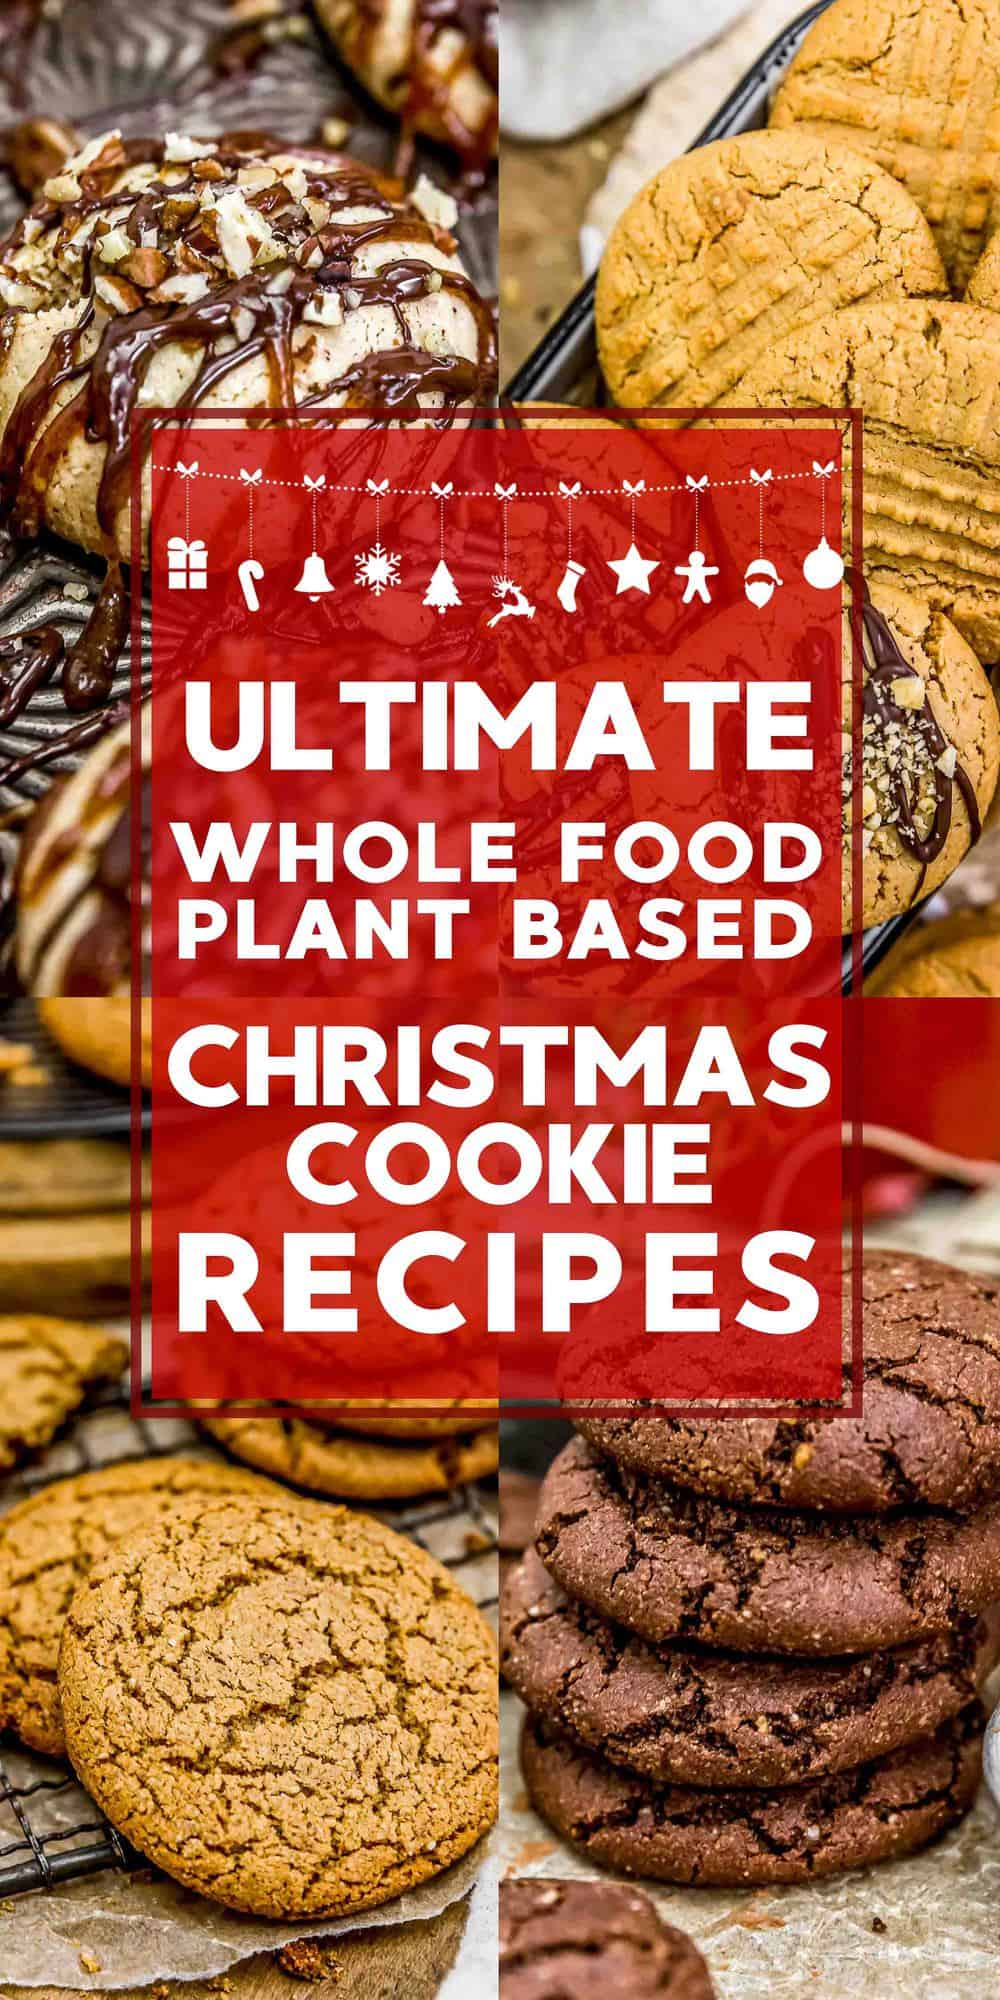 Whole Food Plant Based Christmas Cookie Recipes Text Description